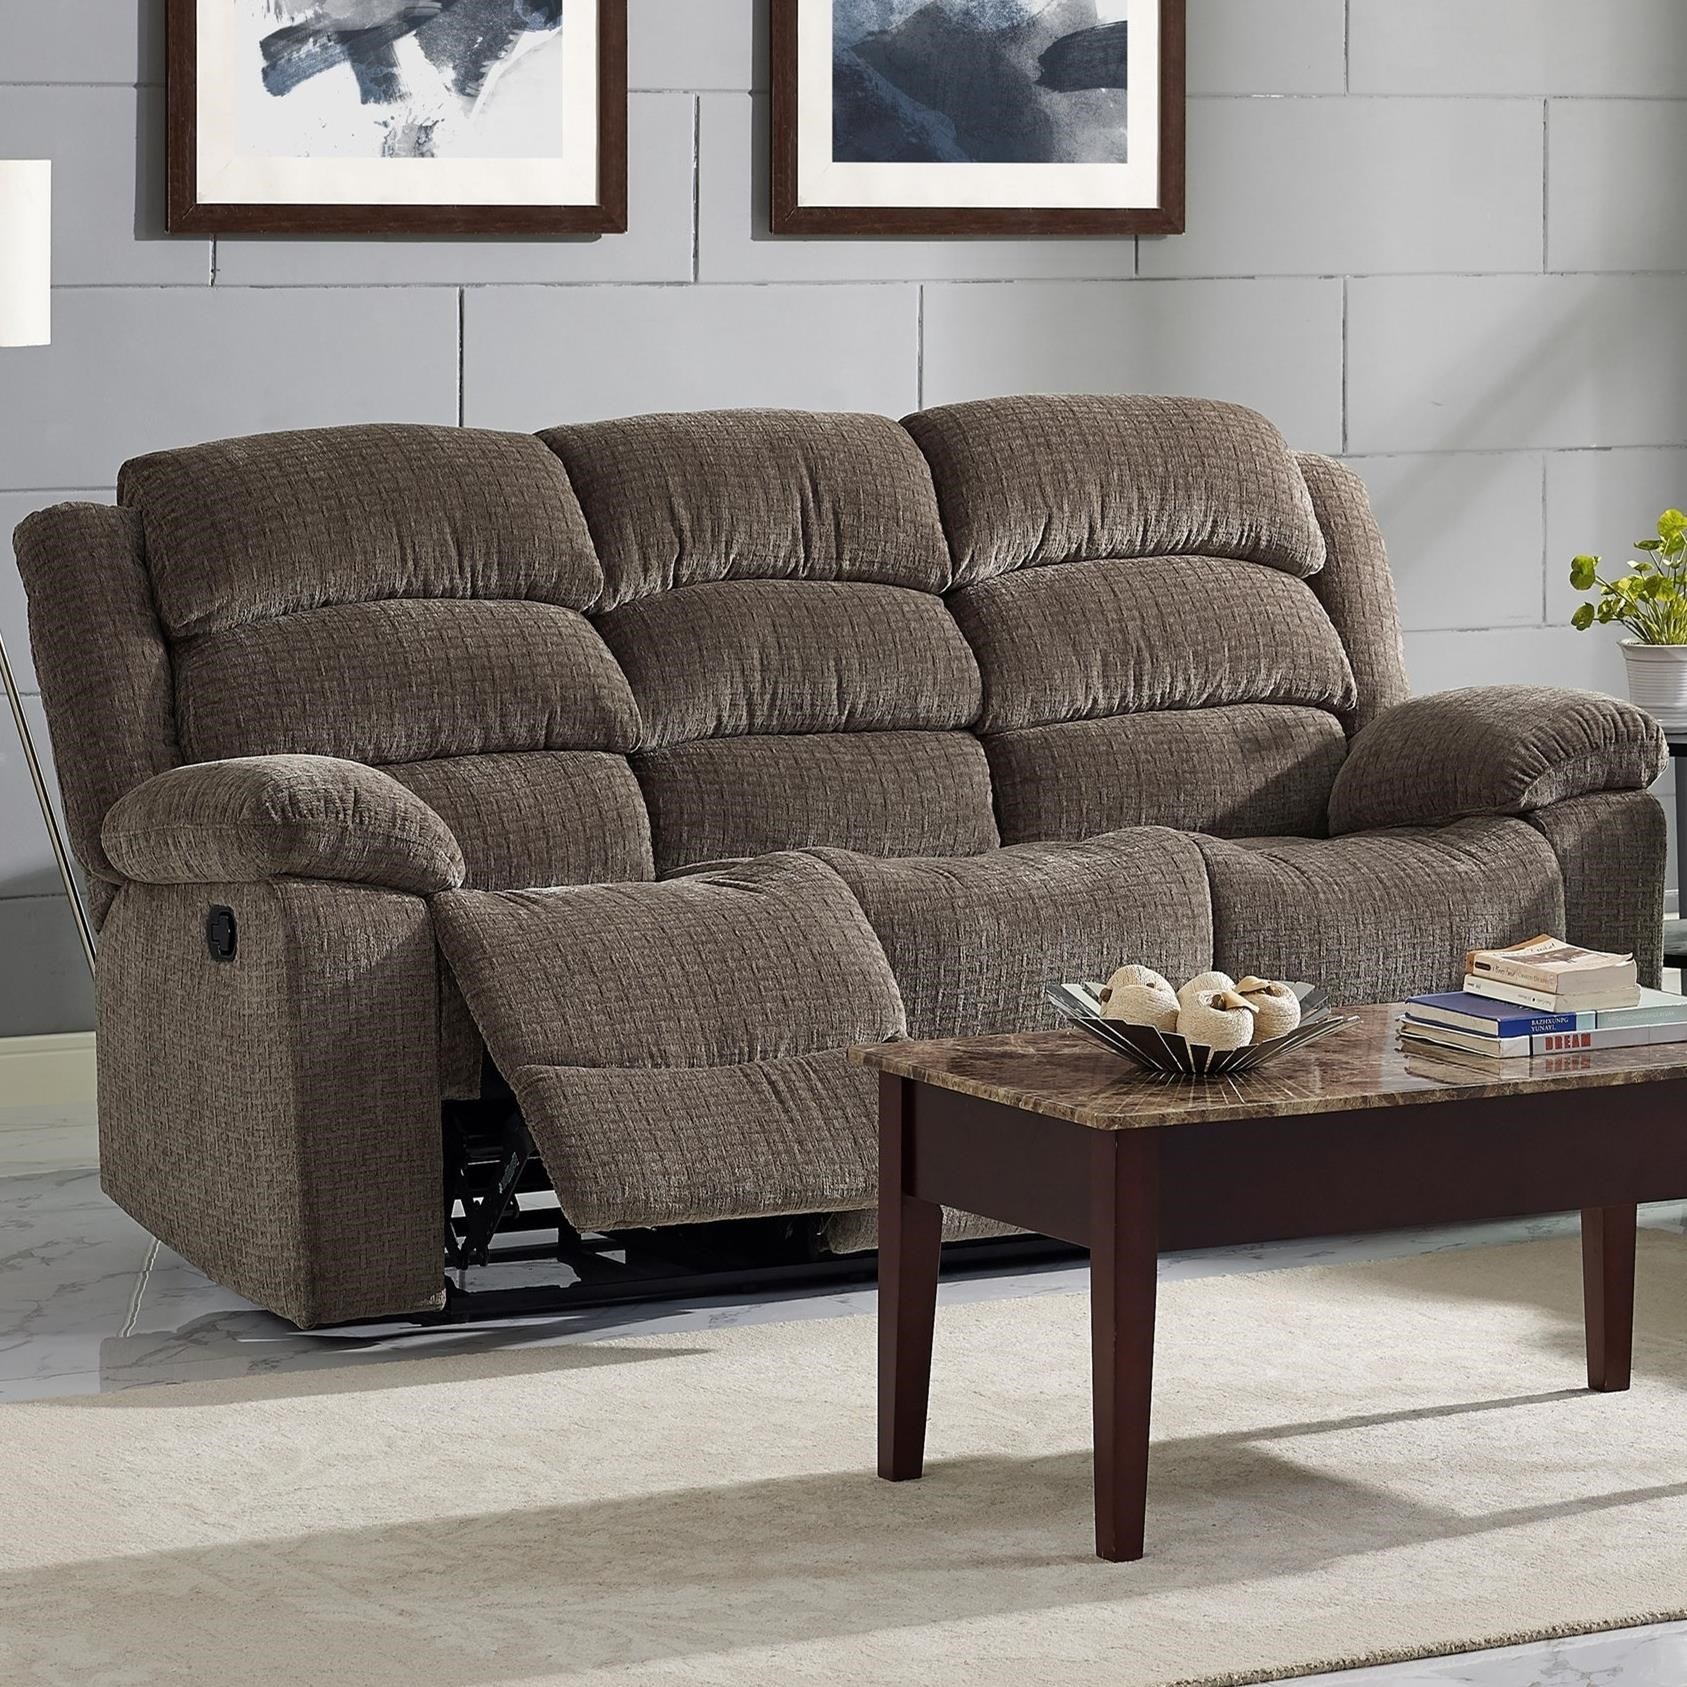 Casual Power Reclining Sofa With Power Headrests   Austin By New Classic    Wilcox Furniture   Reclining Sofas Corpus Christi, Kingsville, Calallen,  Texas